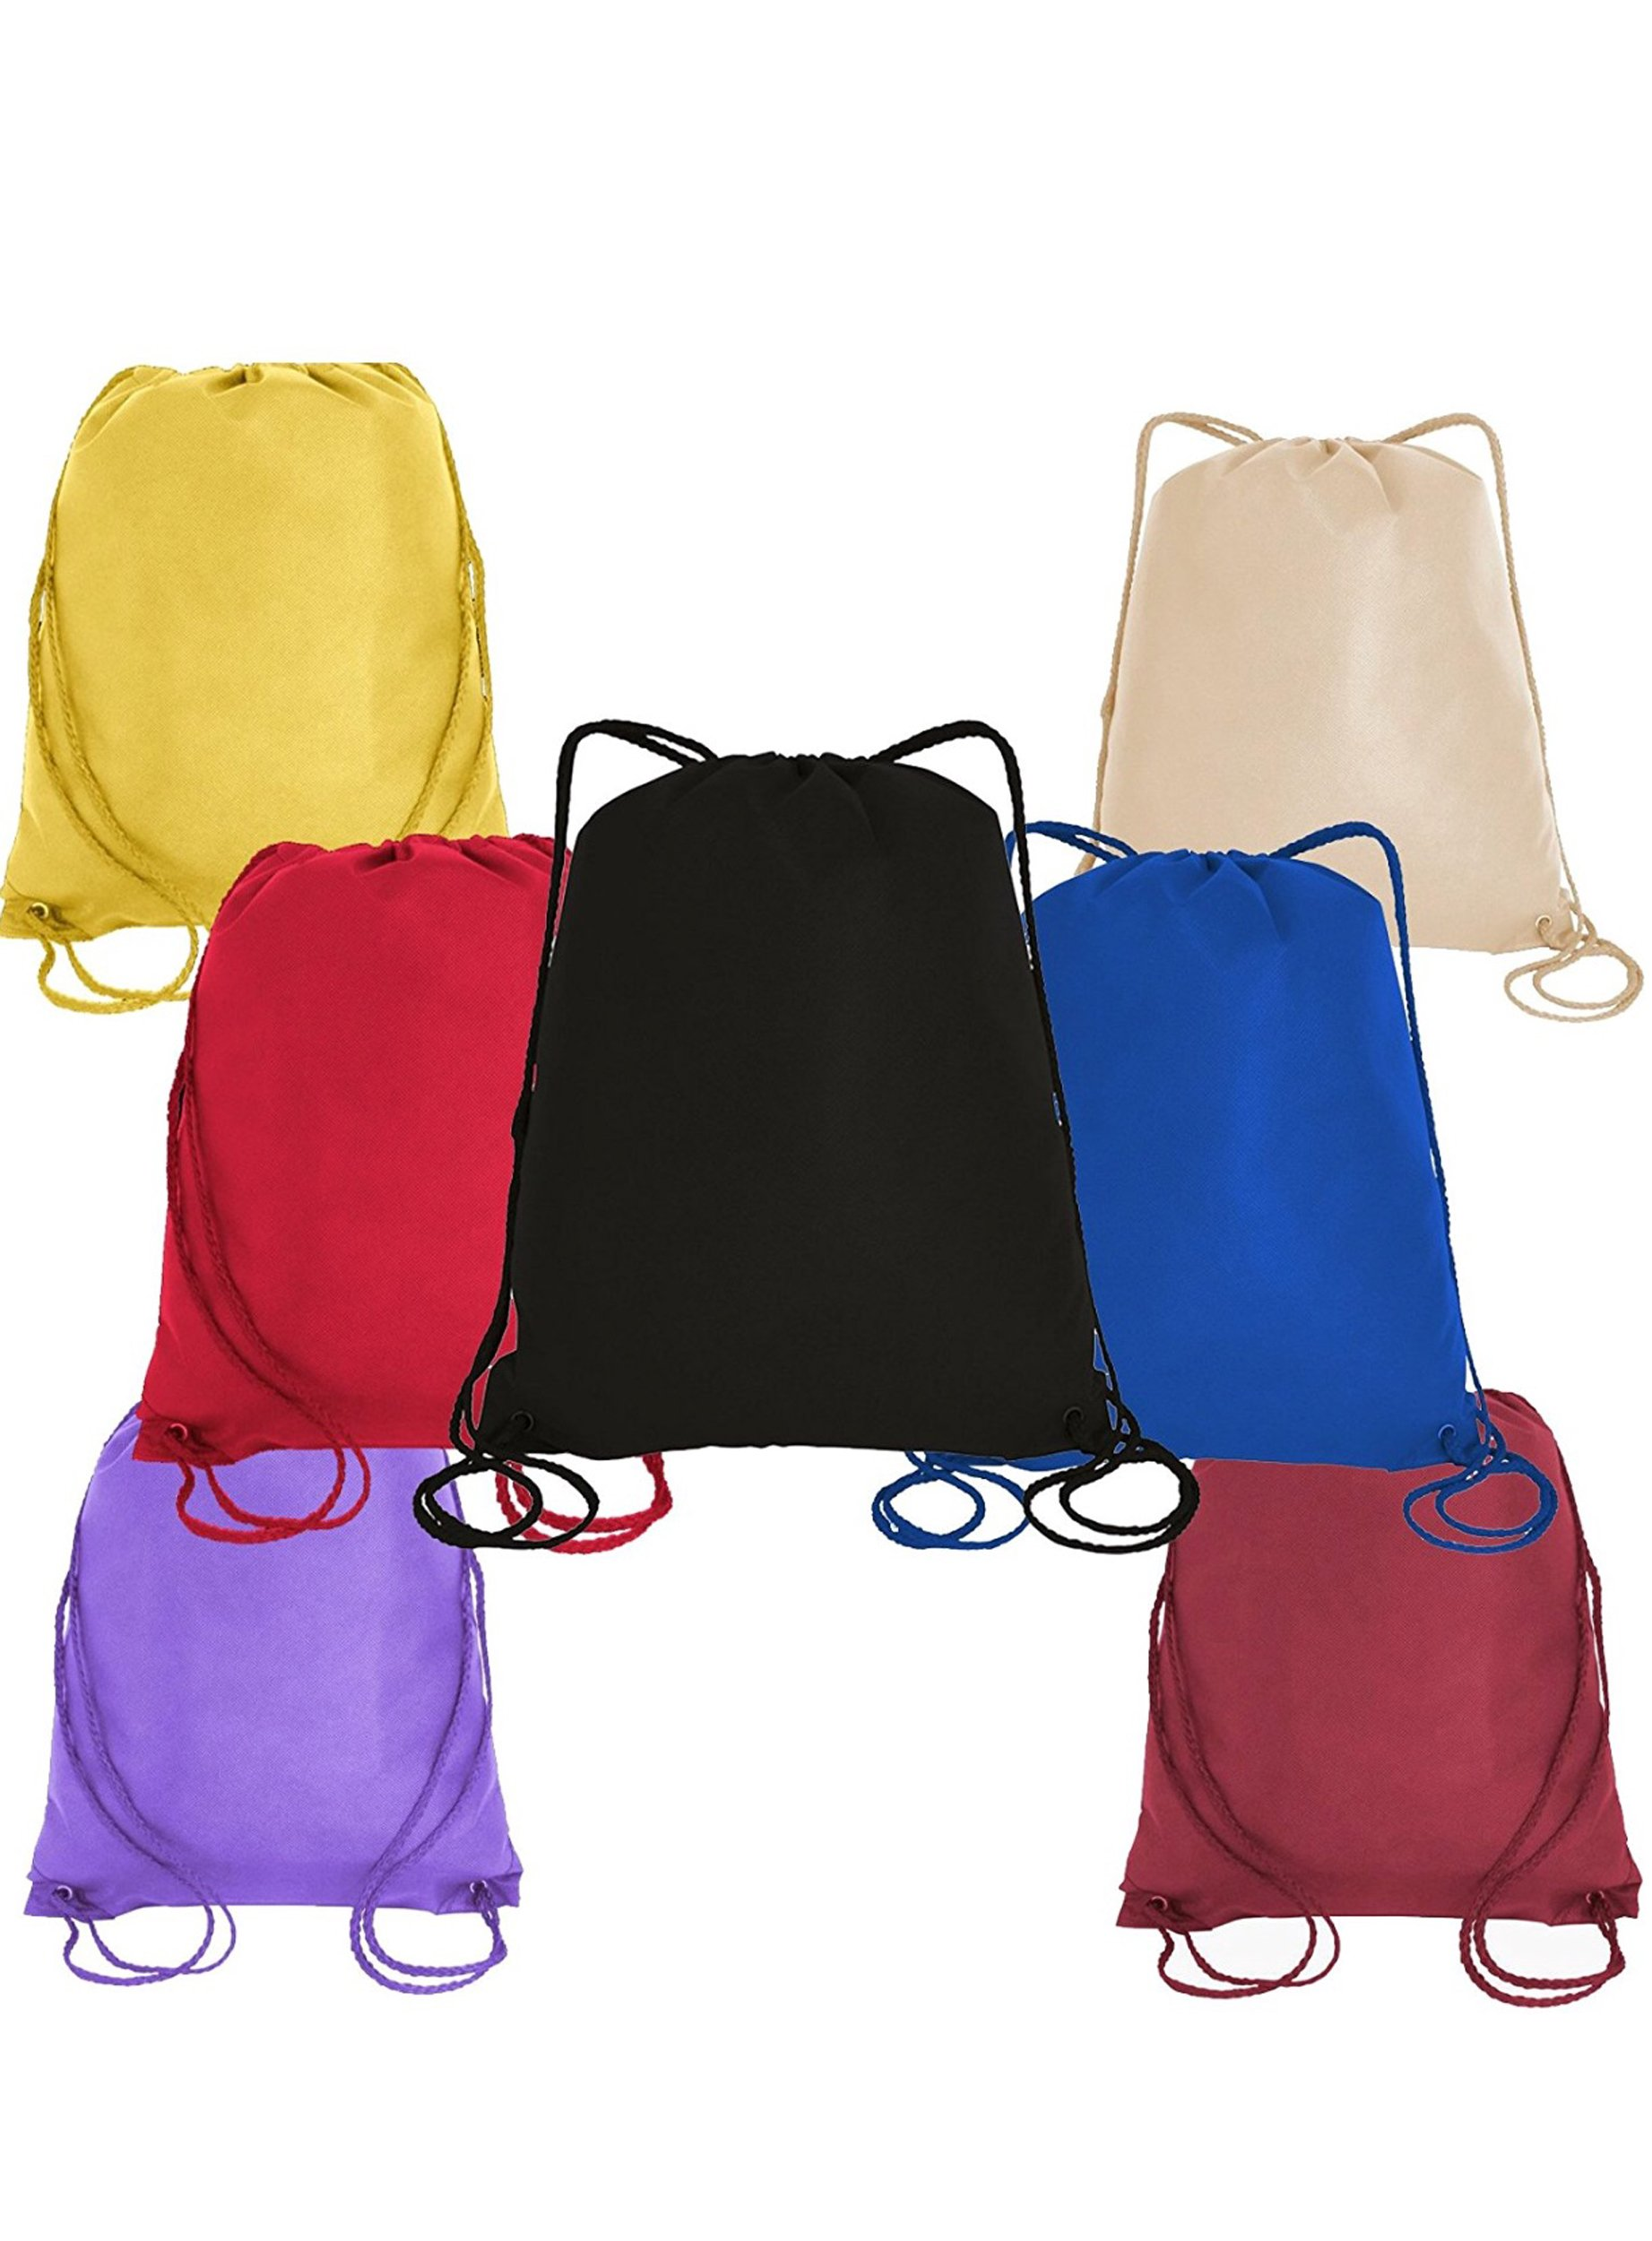 50 PACK - Economical Non Woven Well Made Drawstring Backpack Bags Bulk - Giveaway Church, School, Event, Trade show bags Charity Cheap Donation Wholesale Drawstring Backpacks Sack Packs (Mix-Assorted)